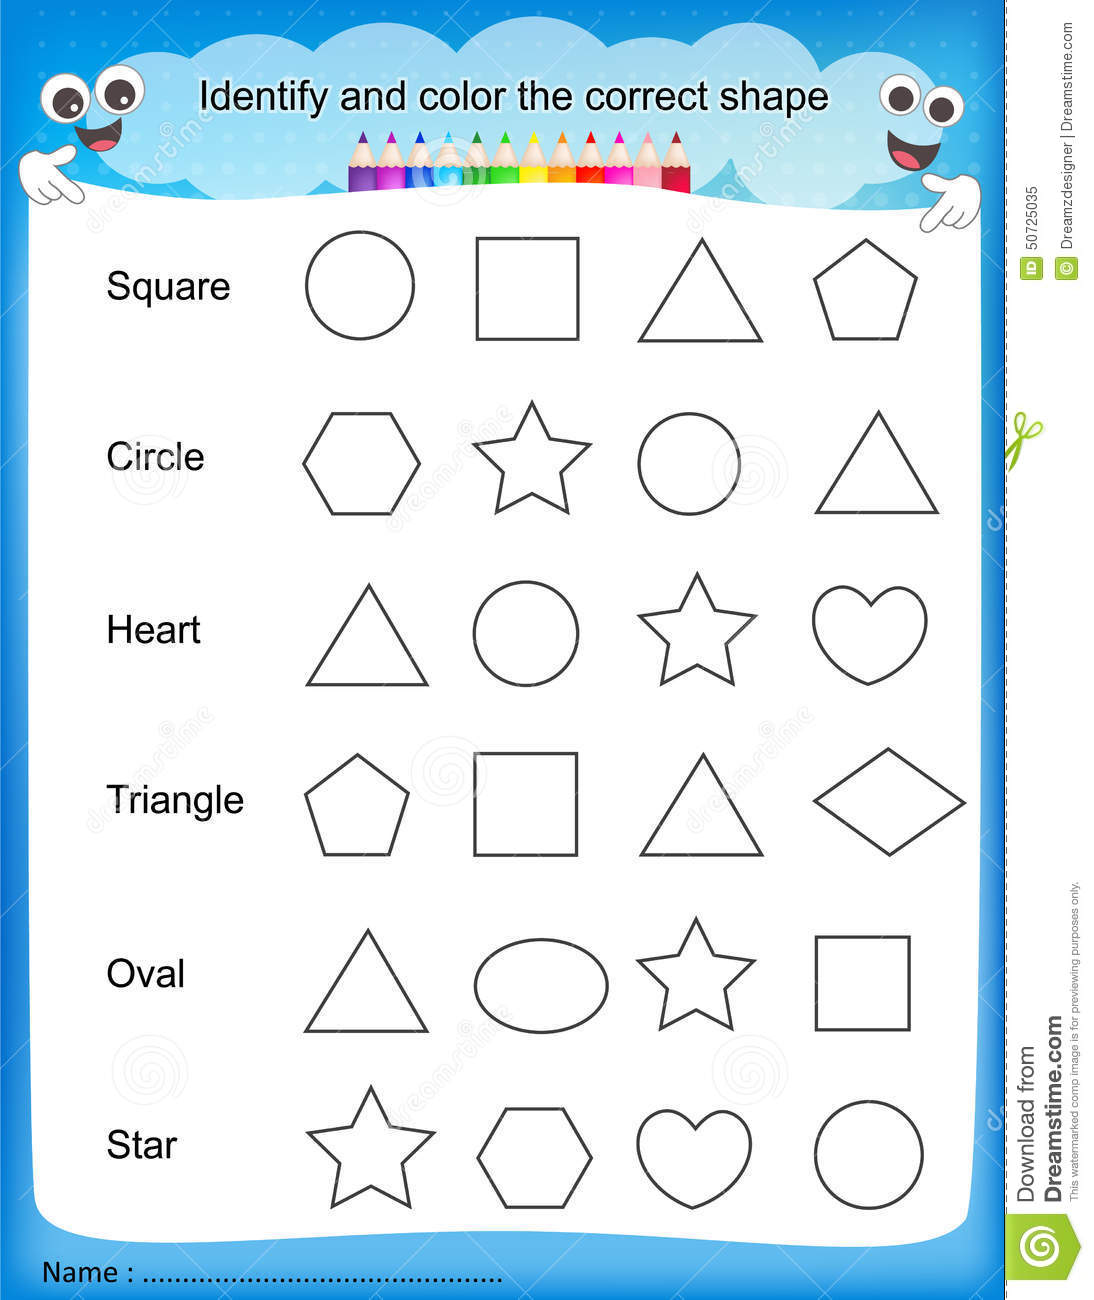 Identify and color the correct shape colorful printable kids worksheet ...